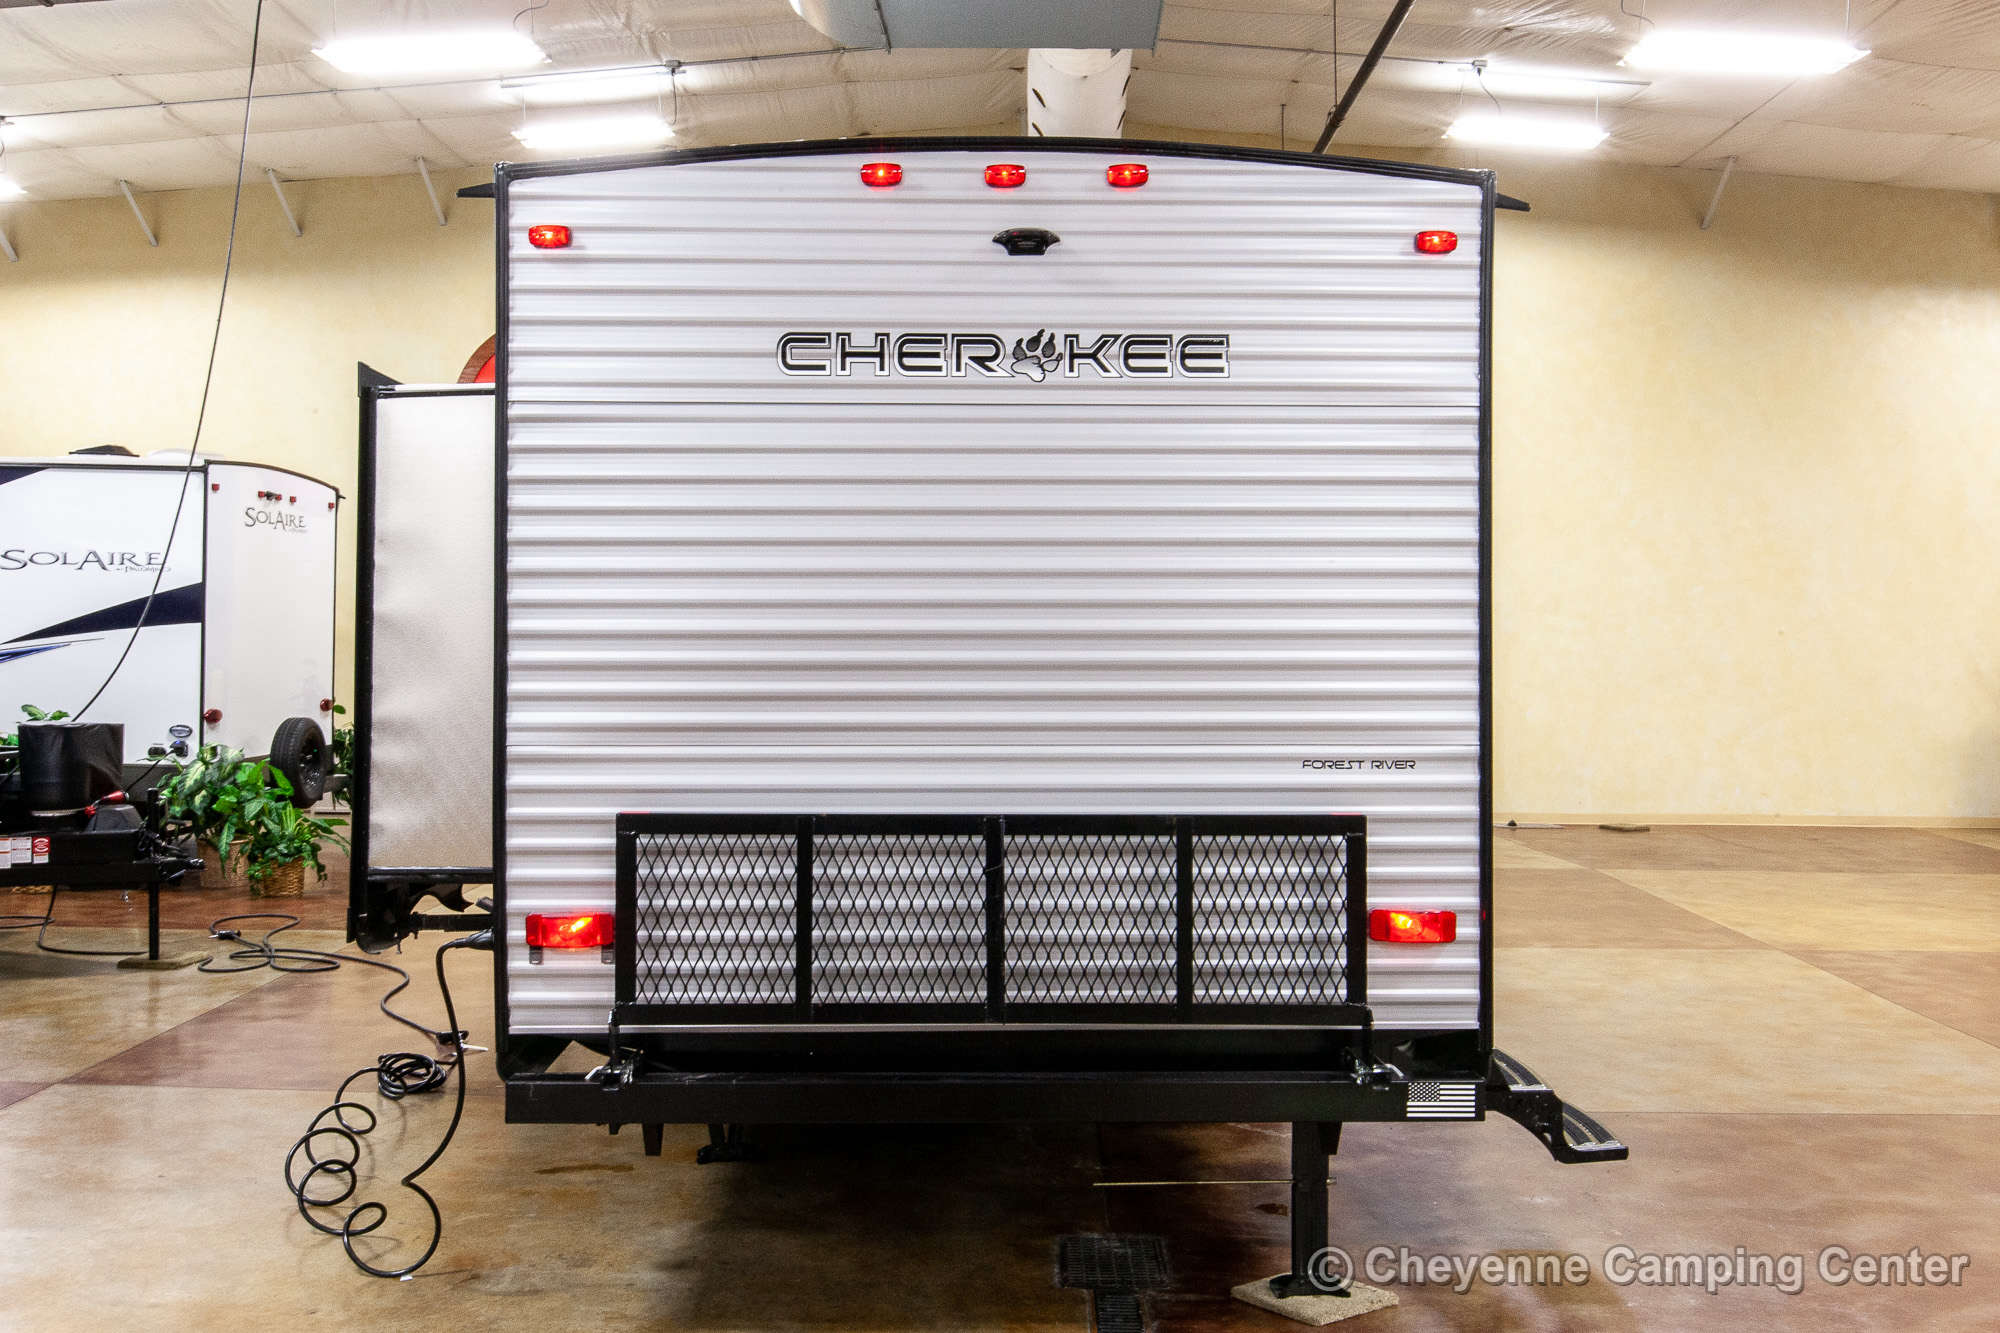 2021 Forest River Cherokee 274BRB Bunkhouse Travel Trailer Exterior Image